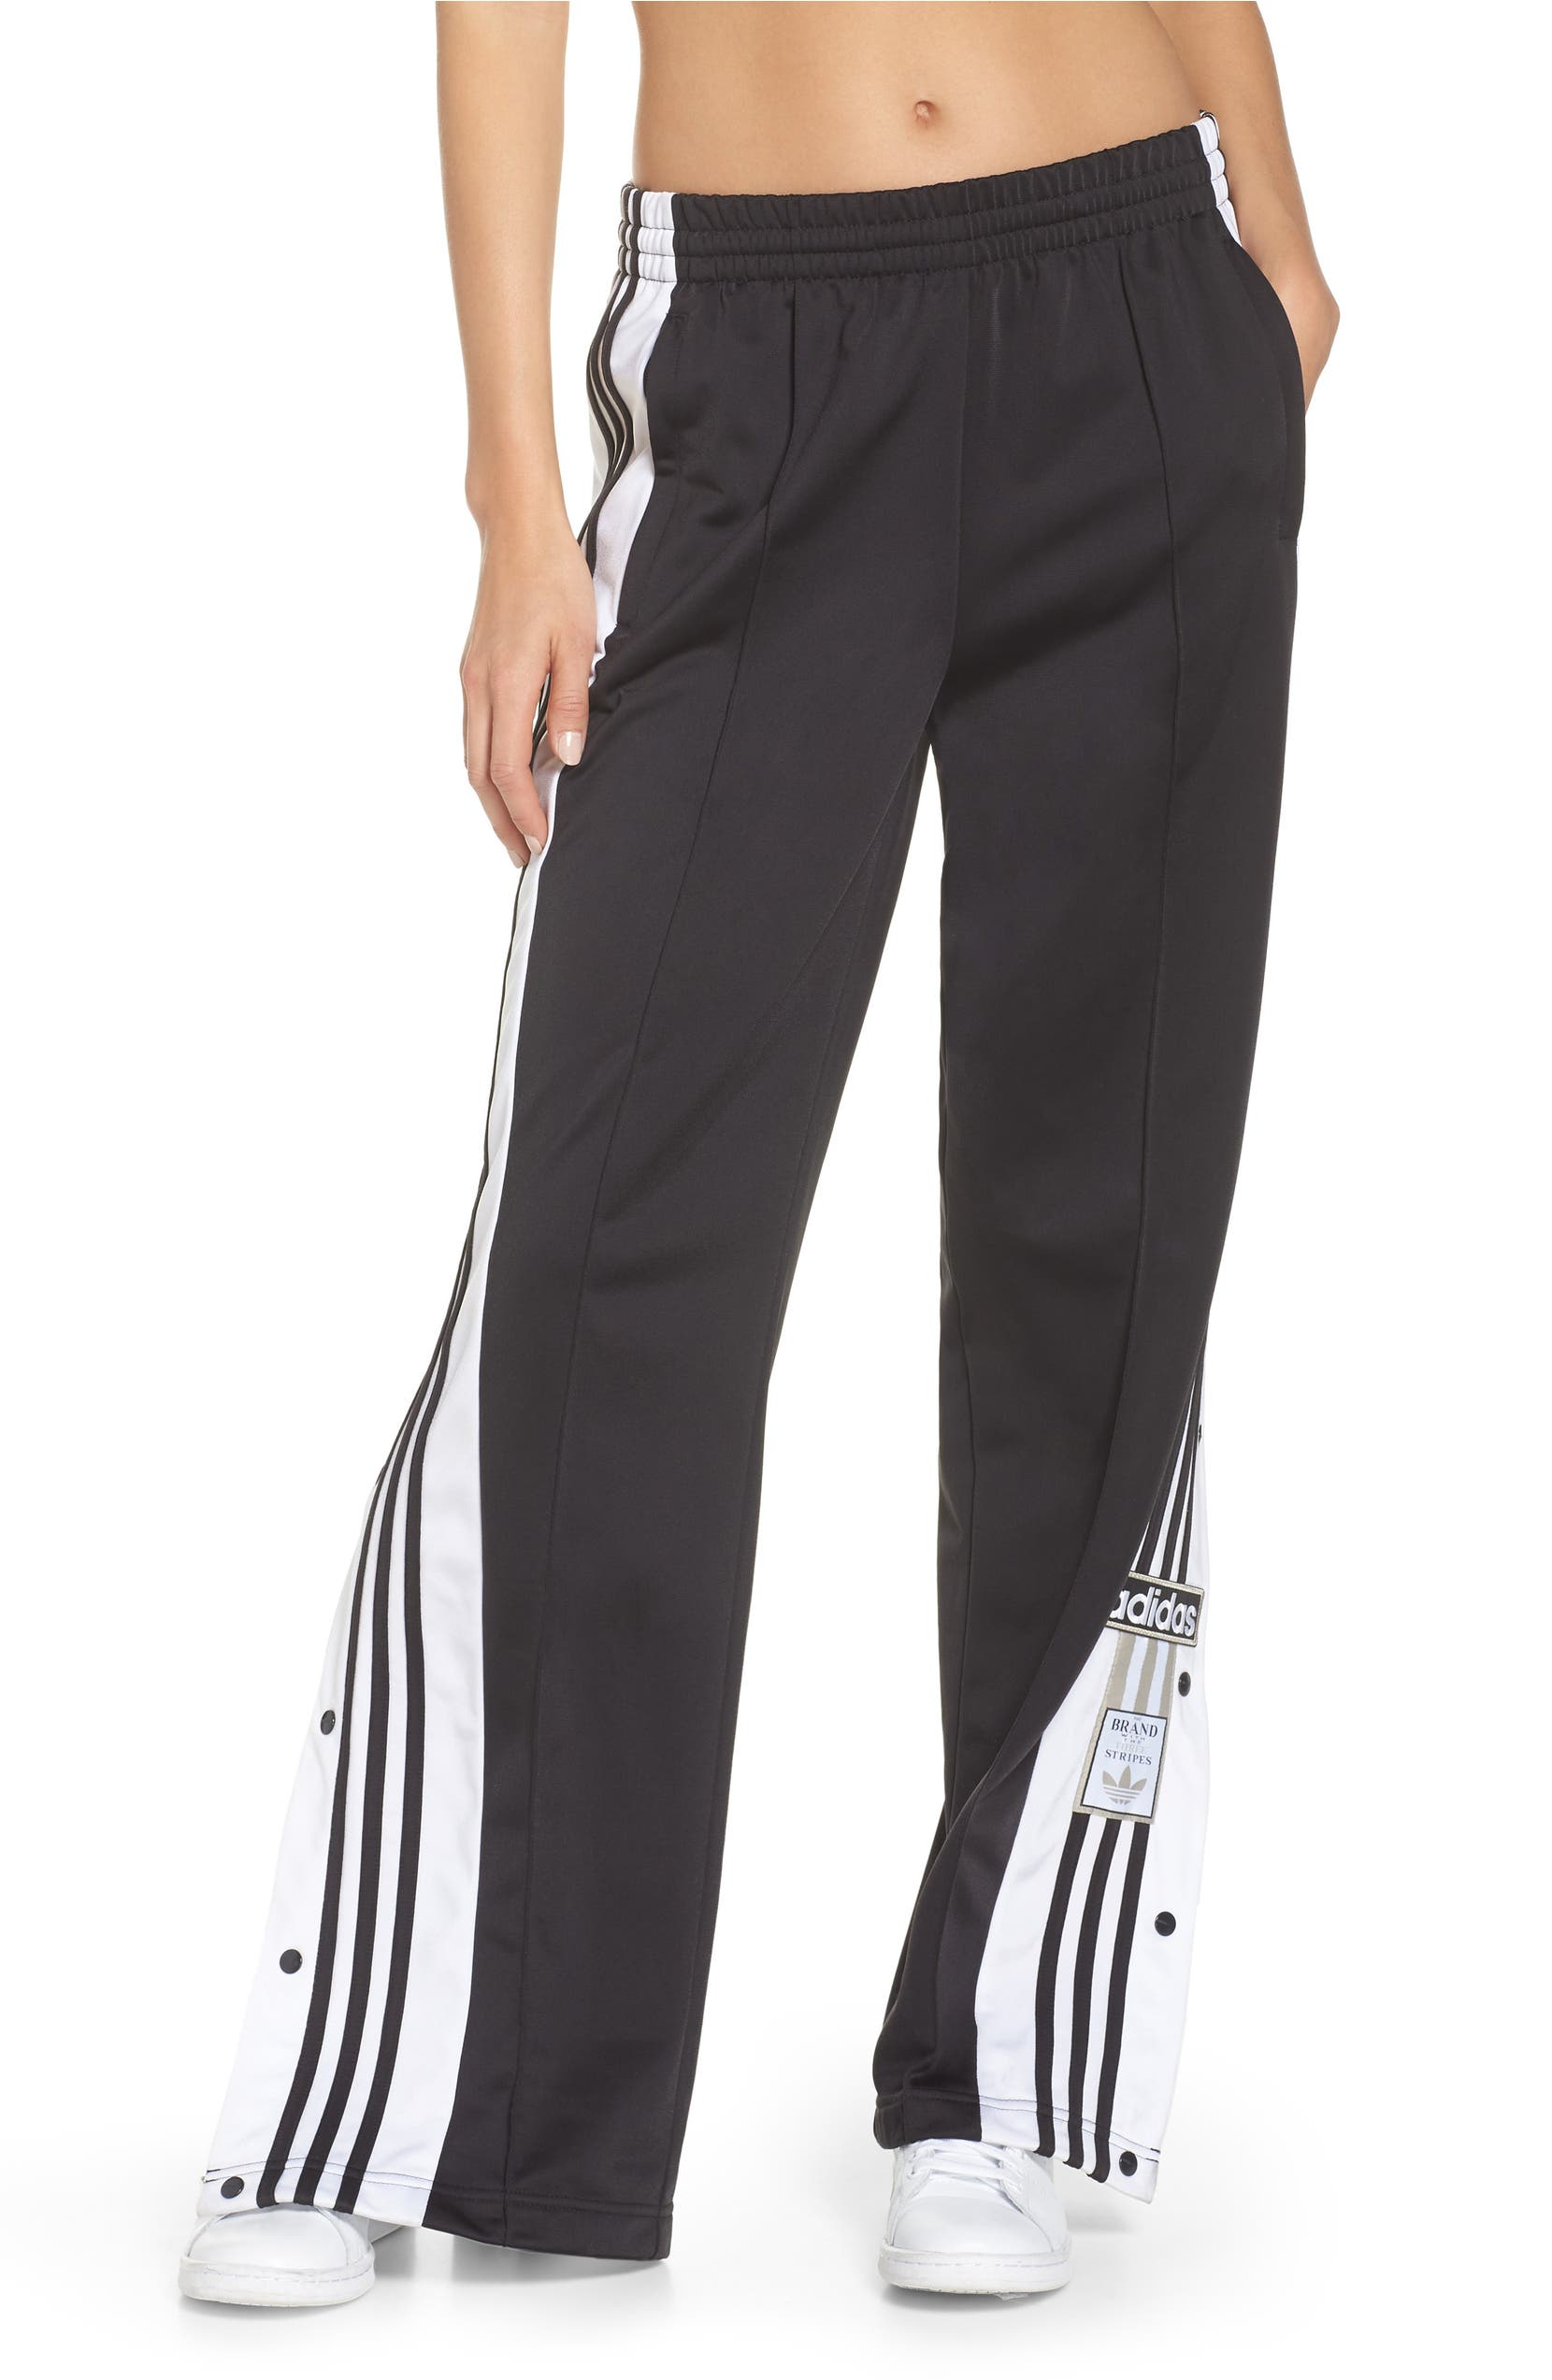 AdiBreak Tapered Track Pants